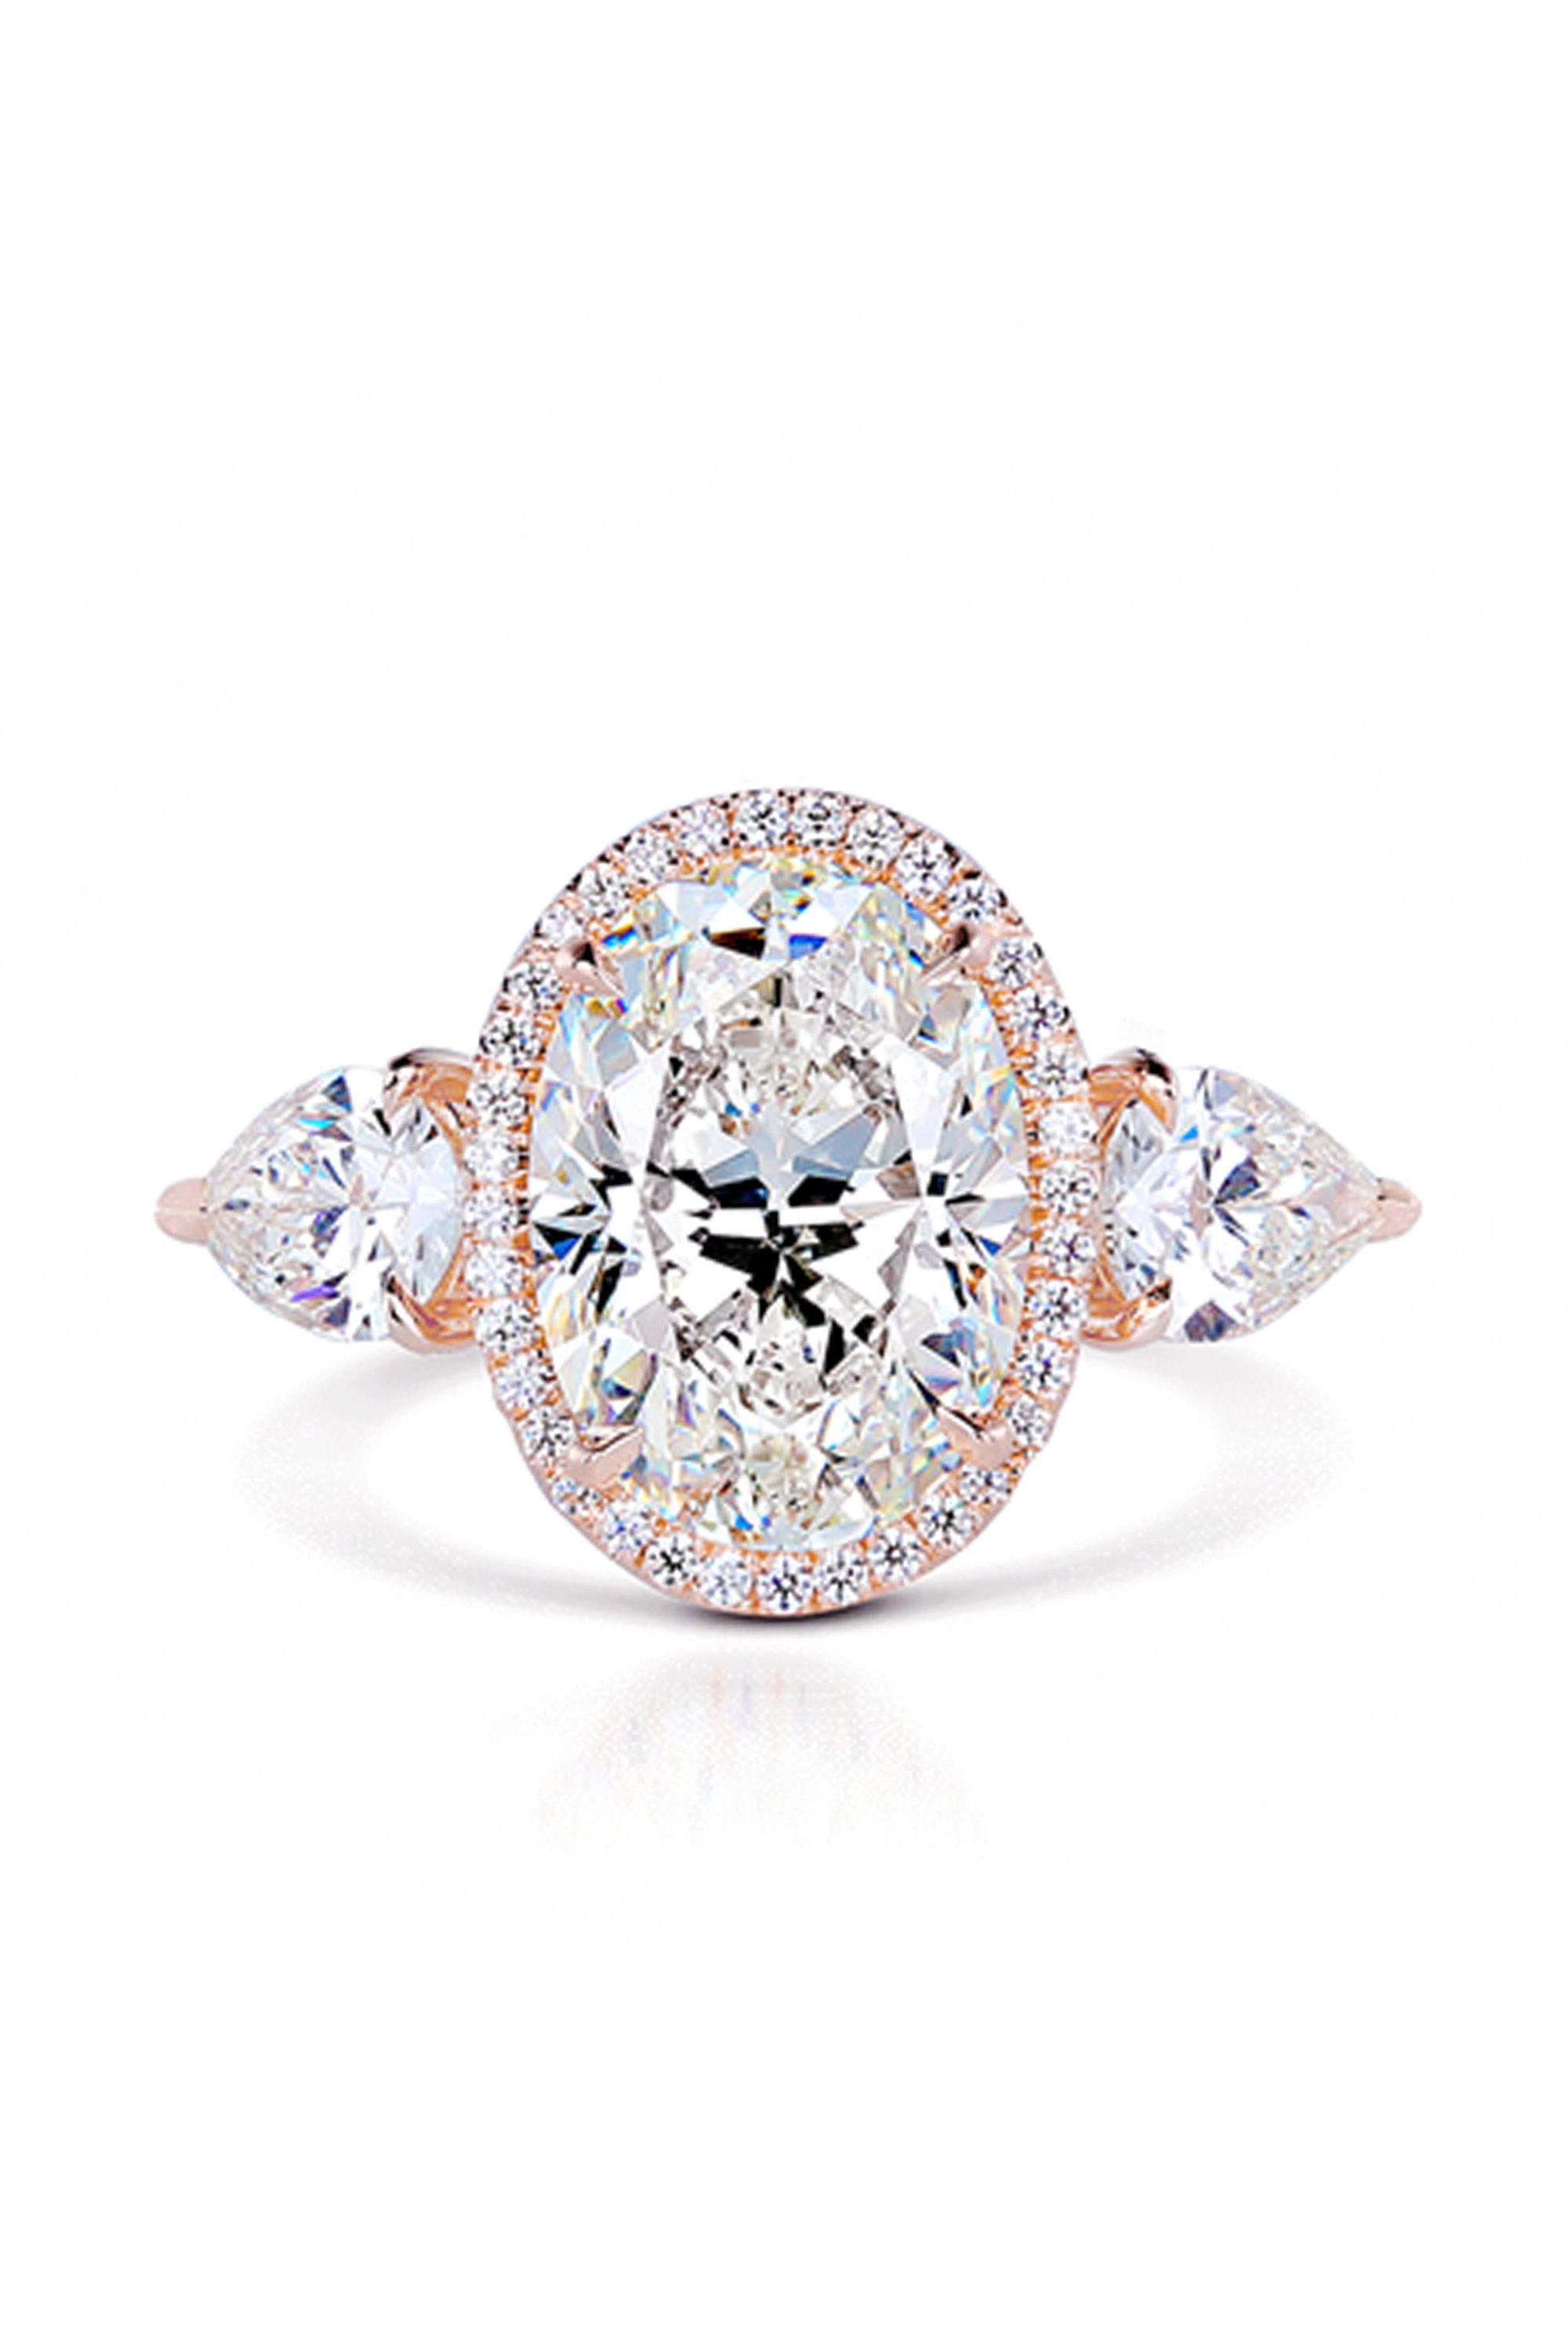 diamond rings a ring reasons forevermark rose engagement fashion gold consider beautiful shopping jewellery to